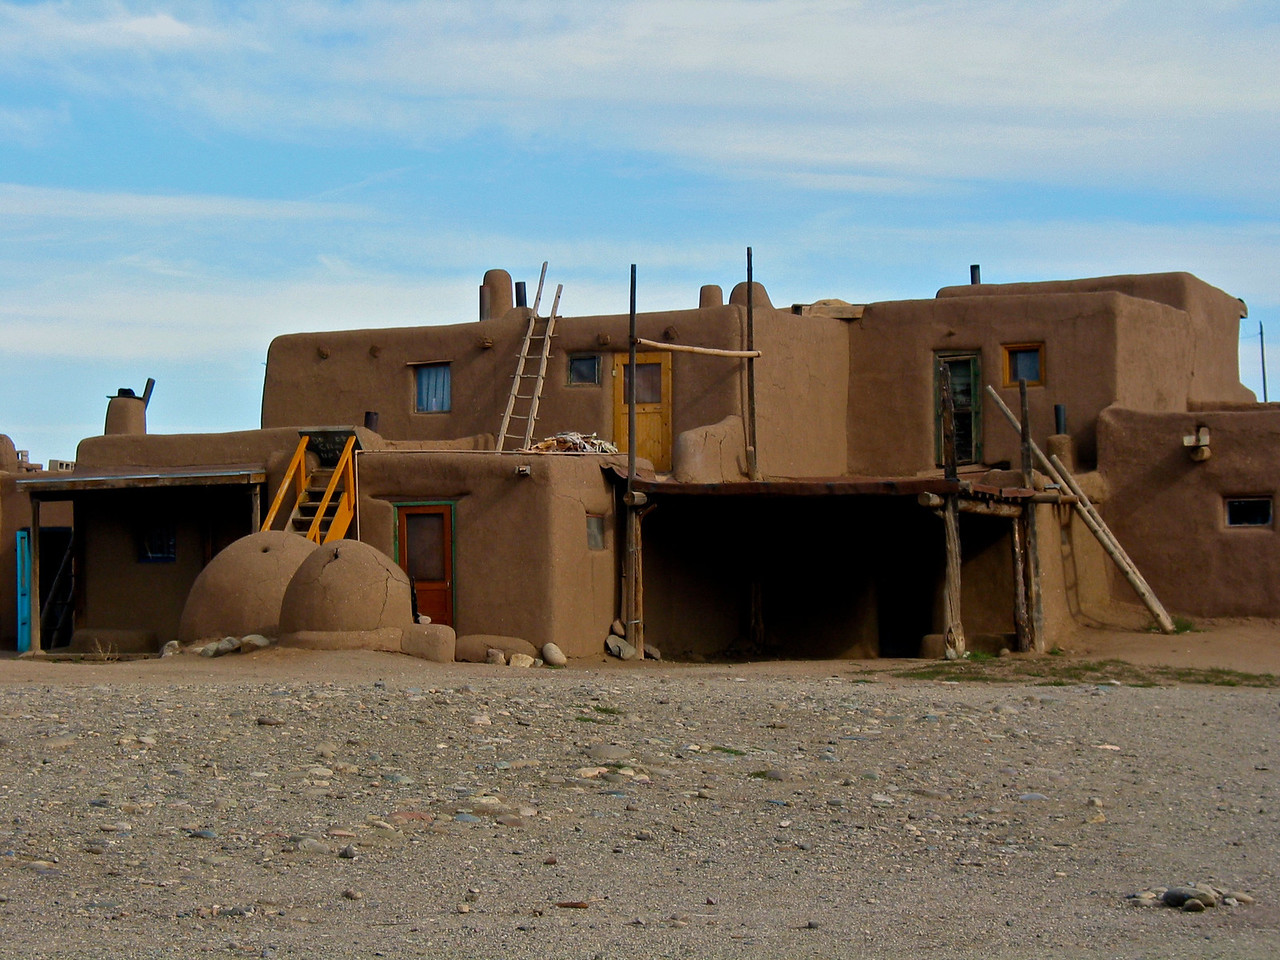 The Pueblo is made entirely of adobe -- earth mixed with water and straw, then either poured into forms or made into sun-dried bricks. The walls are frequently several feet thick. The roofs of each of the five stories are supported by large timbers -- vigas -- hauled down from the mountain forests. Smaller pieces of wood -- pine or aspen latillas -- are placed side-by-side on top of the vigas; the whole roof is covered with packed dirt.